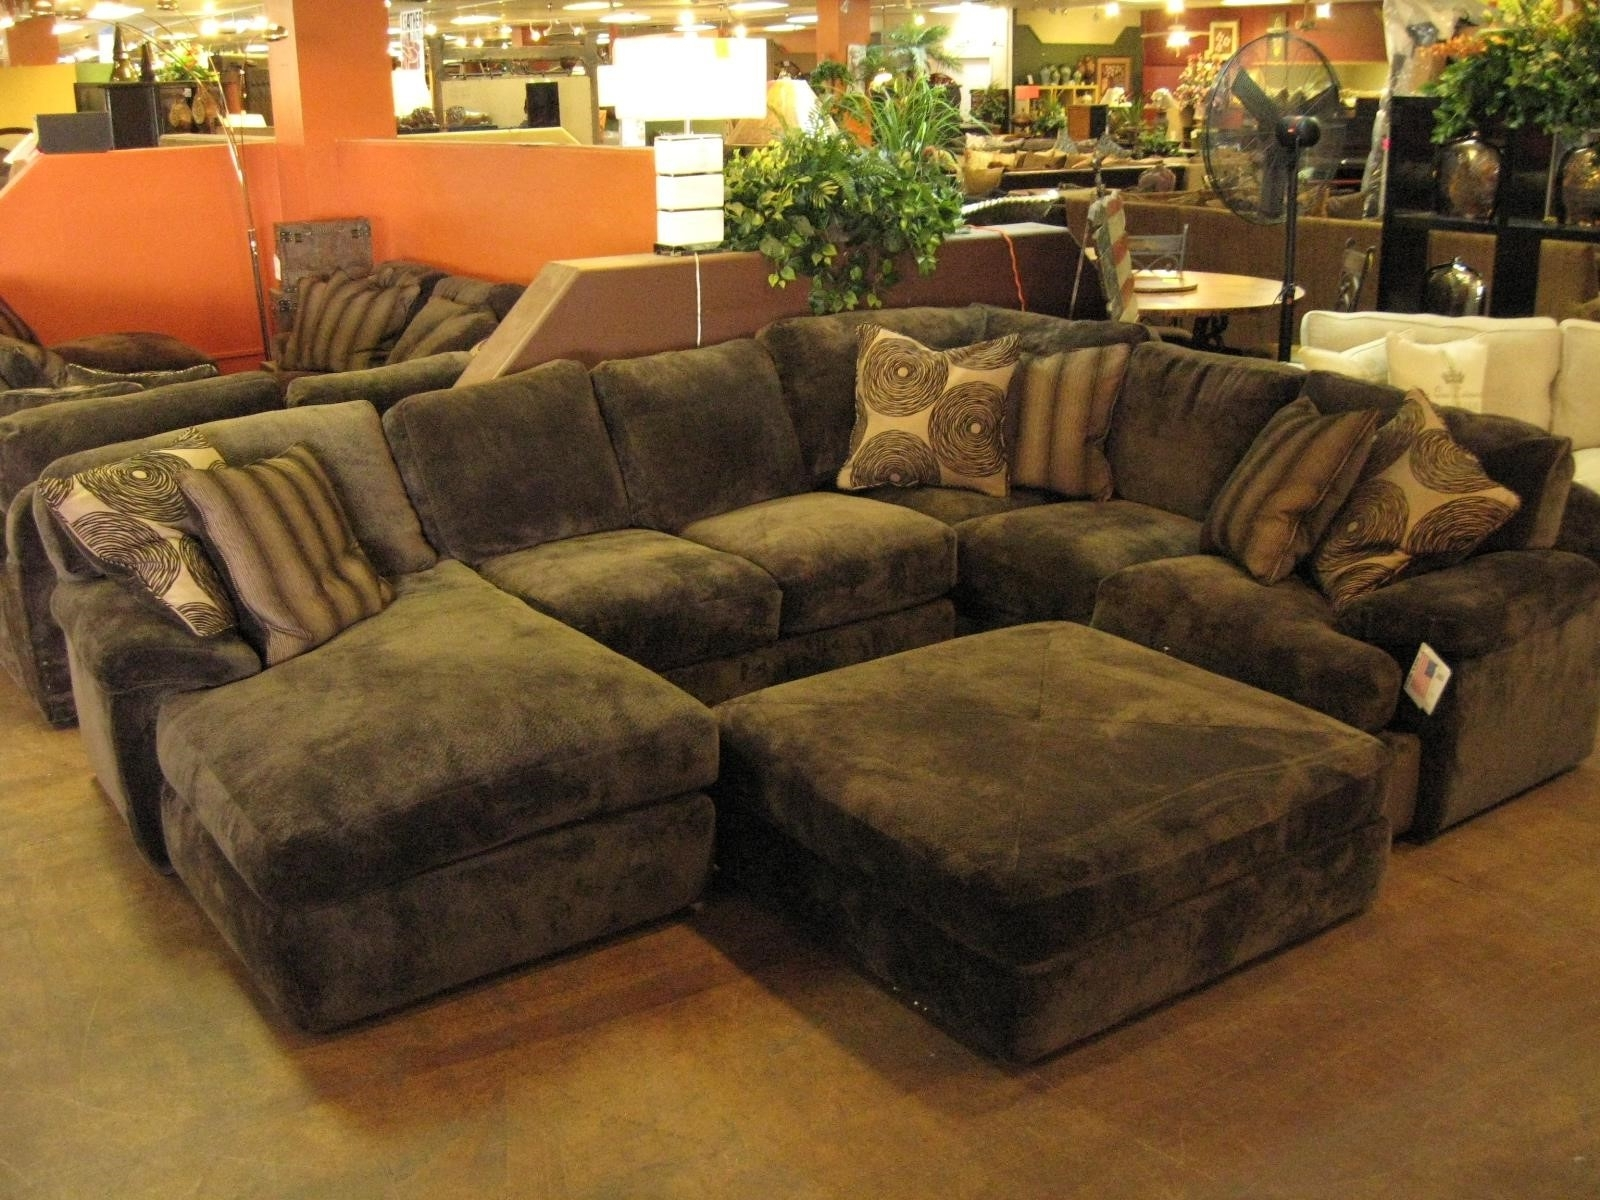 Trendy Sofa : Magnificent Large Sectional Sofa With Chaise Reclining In Oversized Sectional Sofas (View 18 of 20)